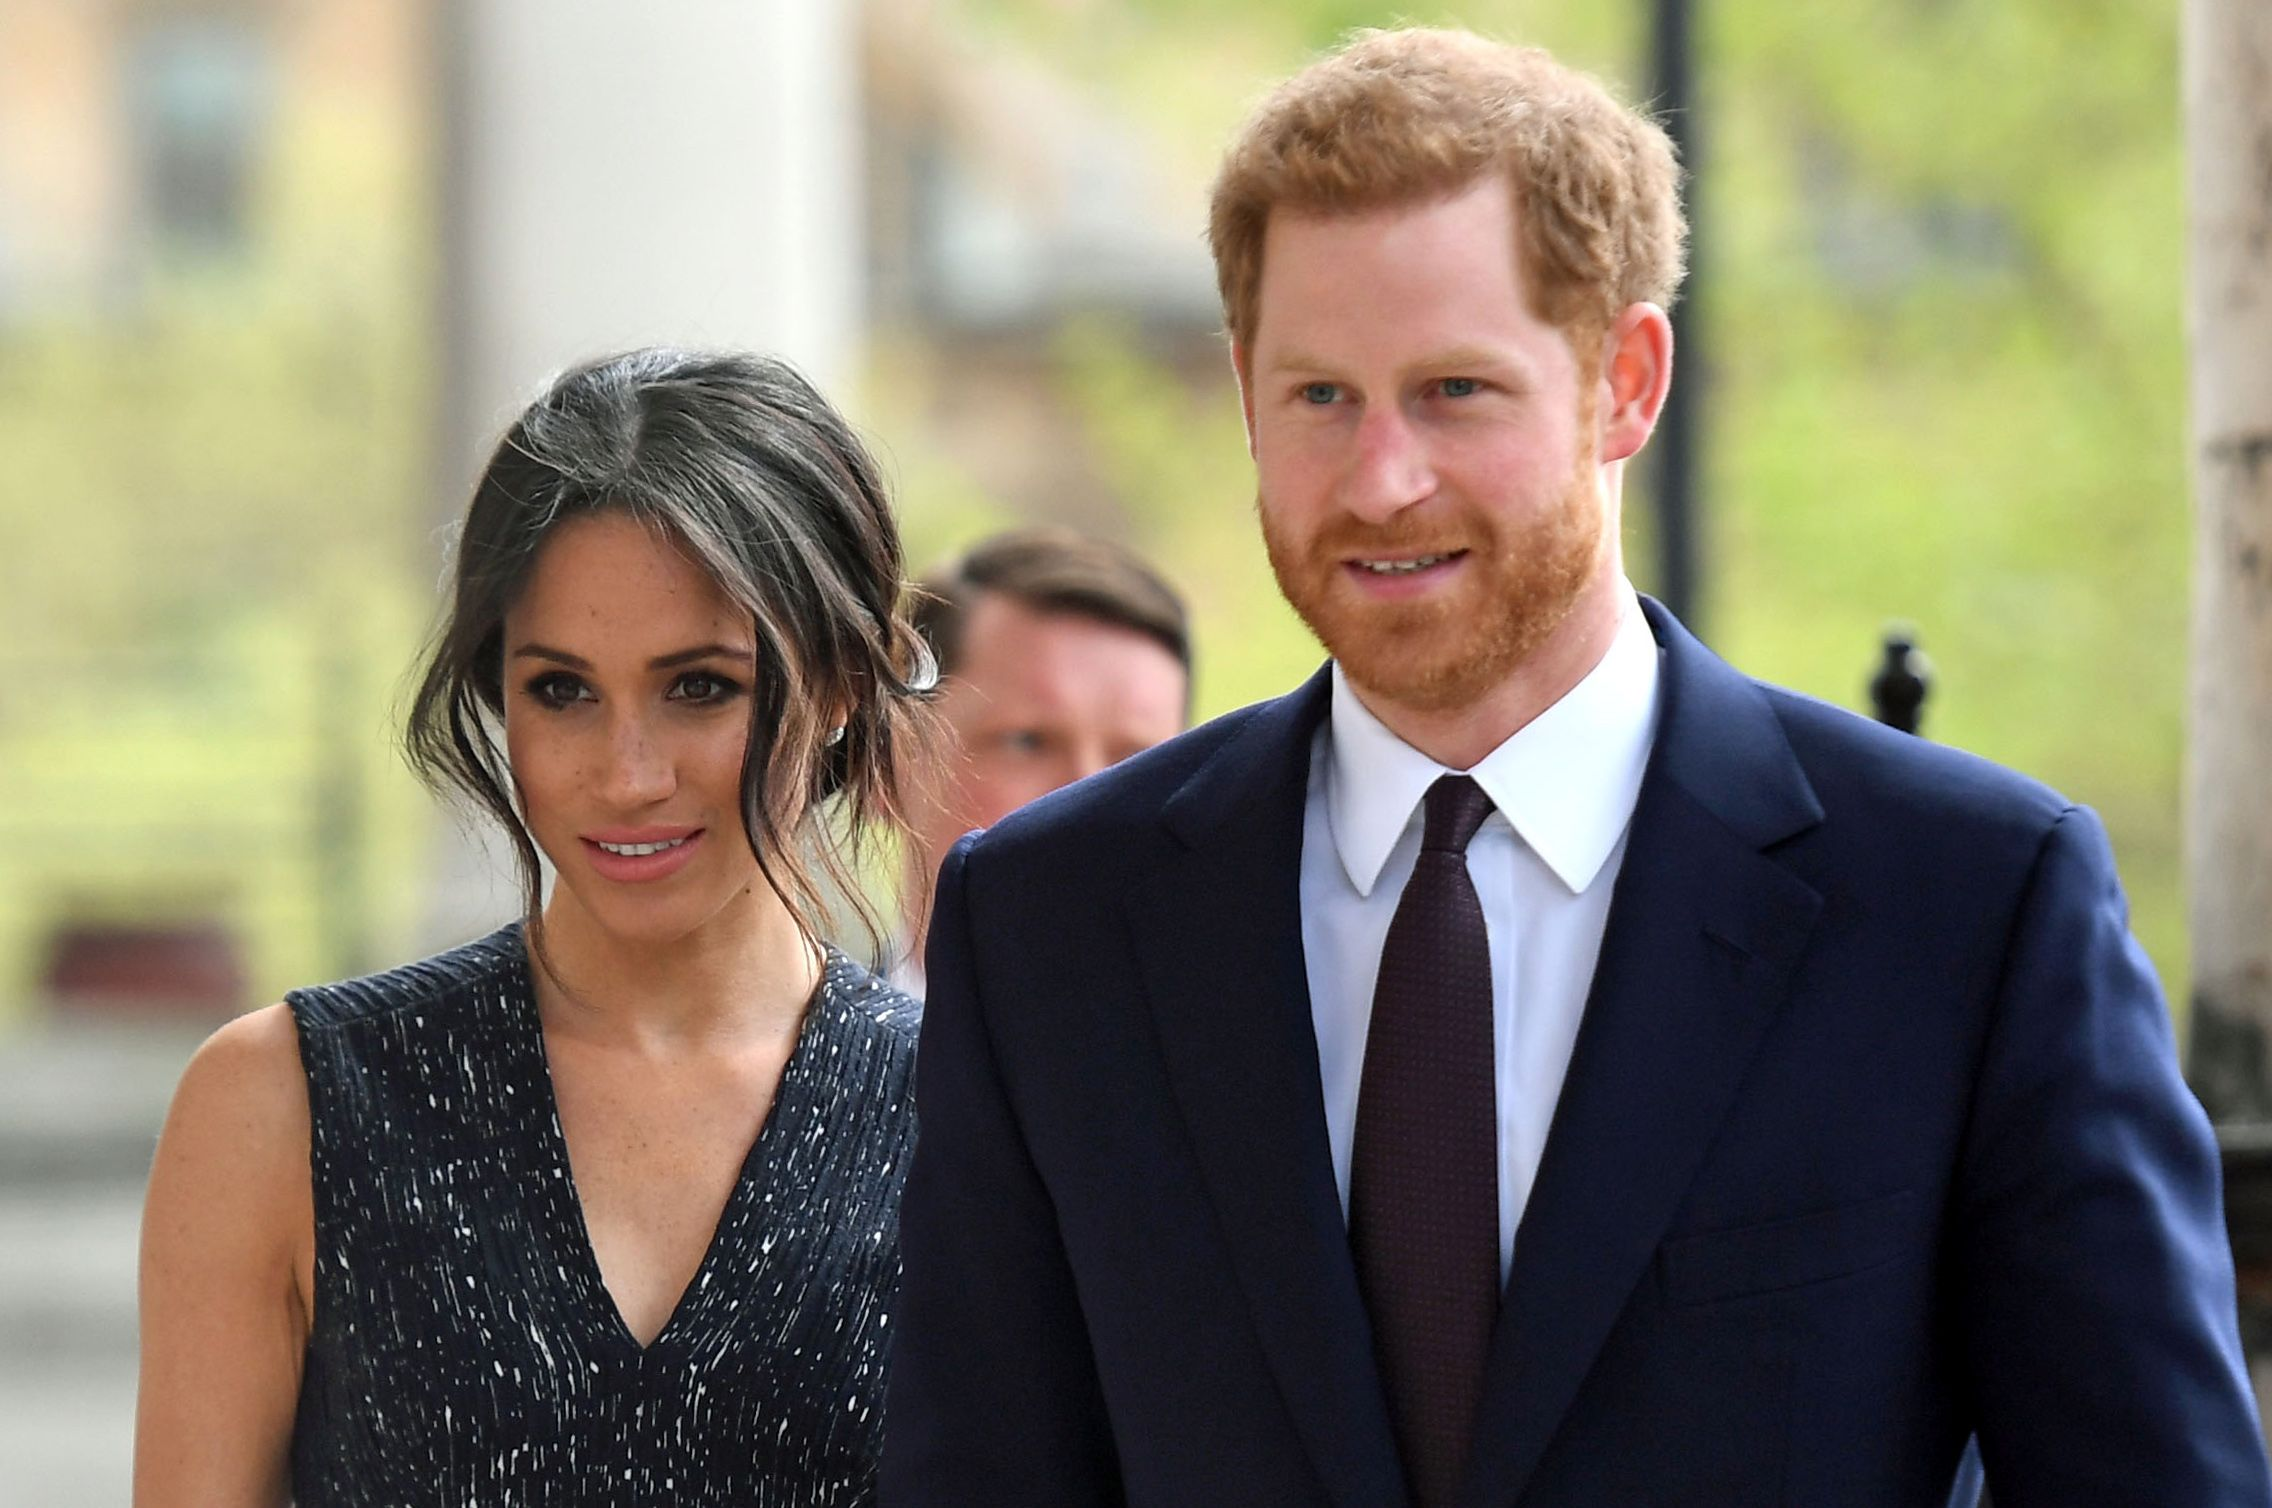 Buckingham Palace Breaks Its Silence on Rumors That Prince Harry and Meghan Markle May Move to Africa